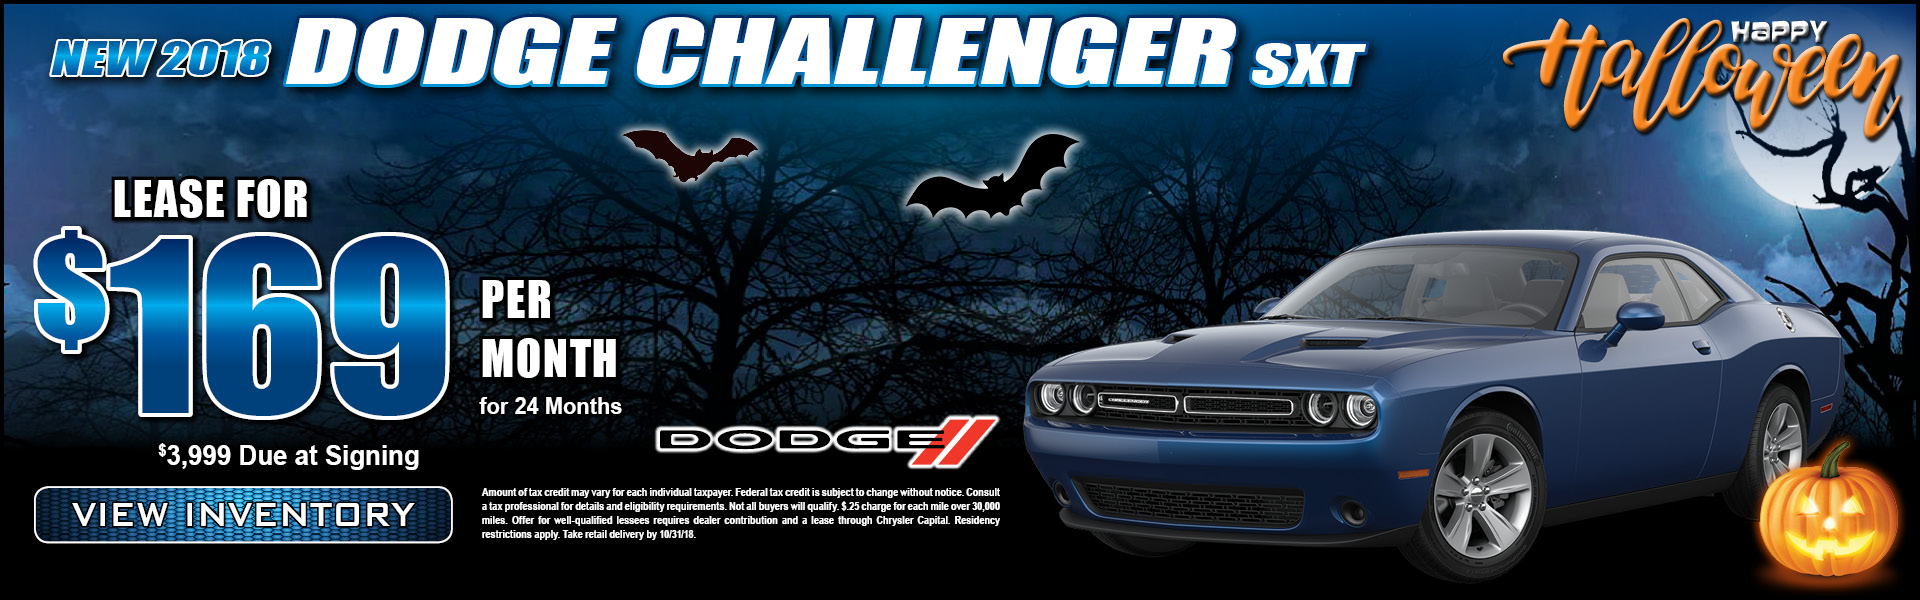 Dodge Challenger $169 Lease